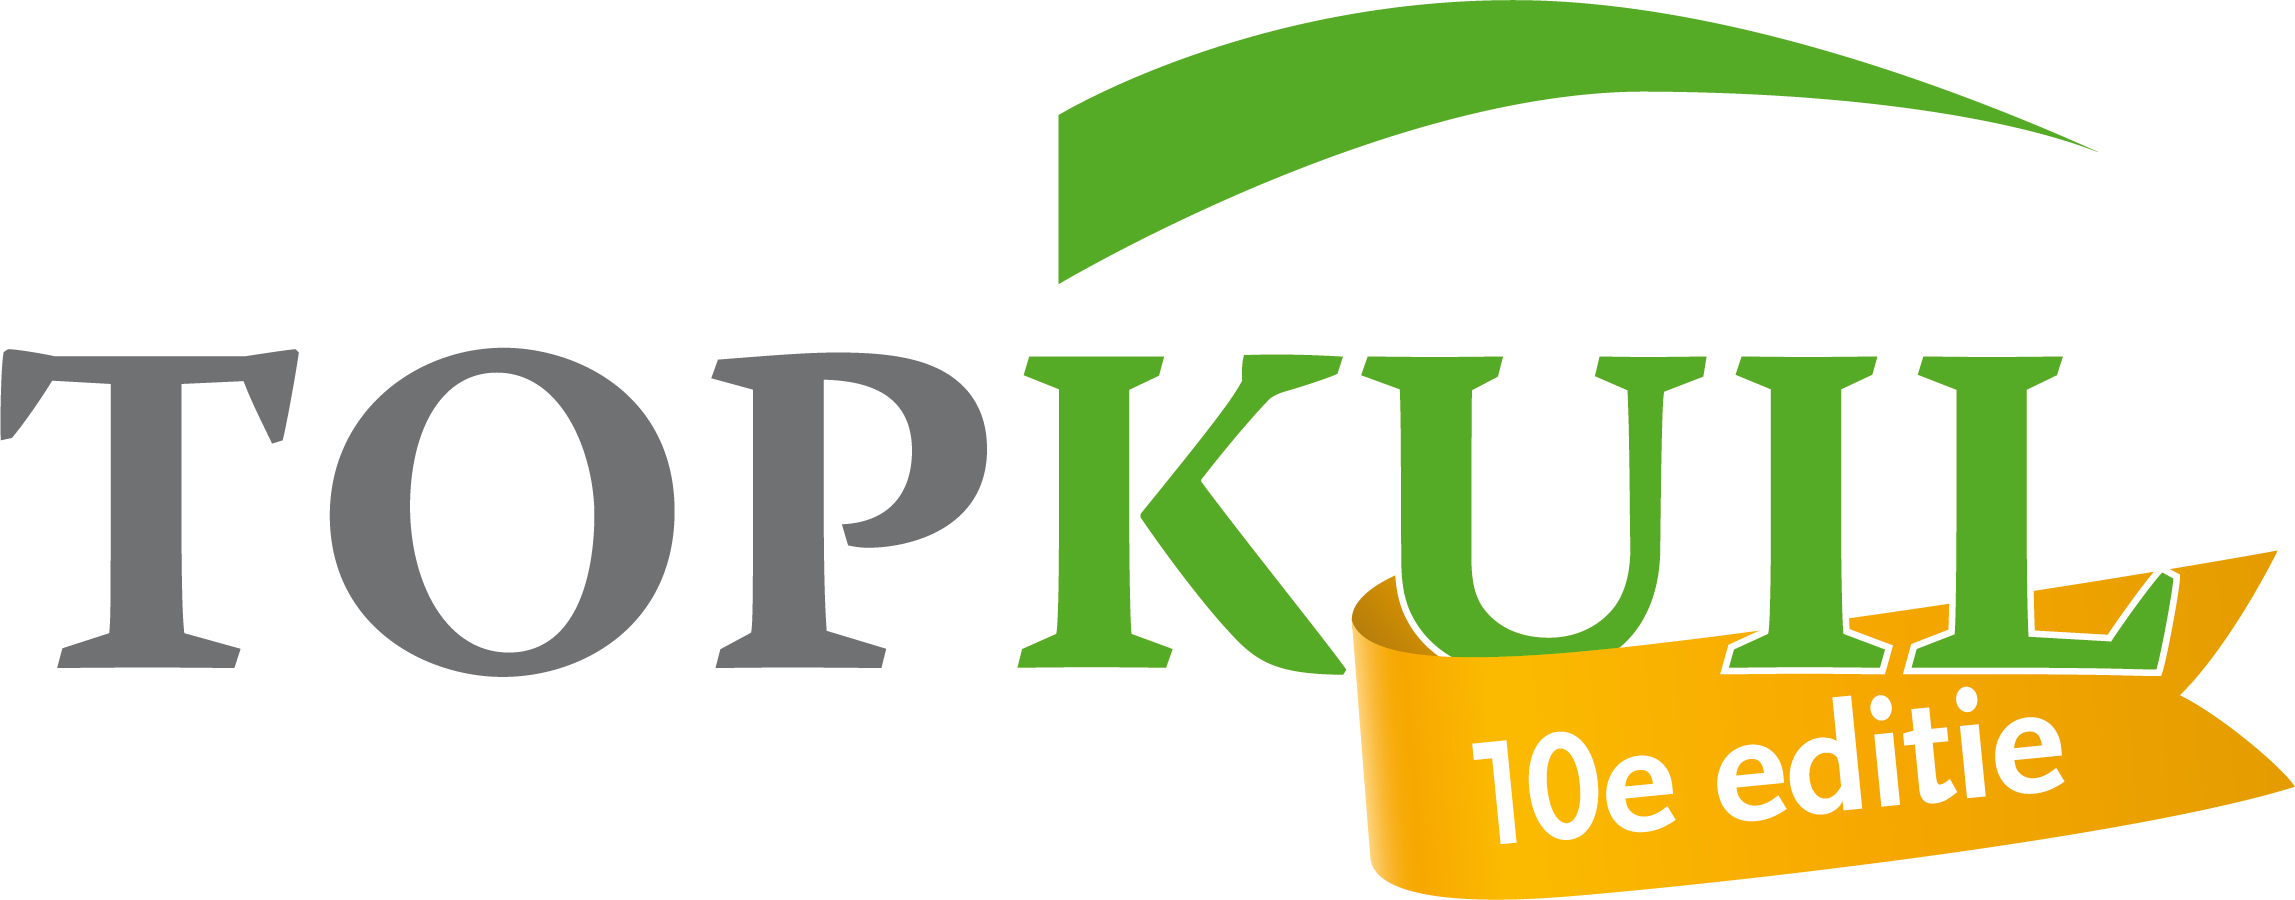 TopKuil Logo 10e editie.png